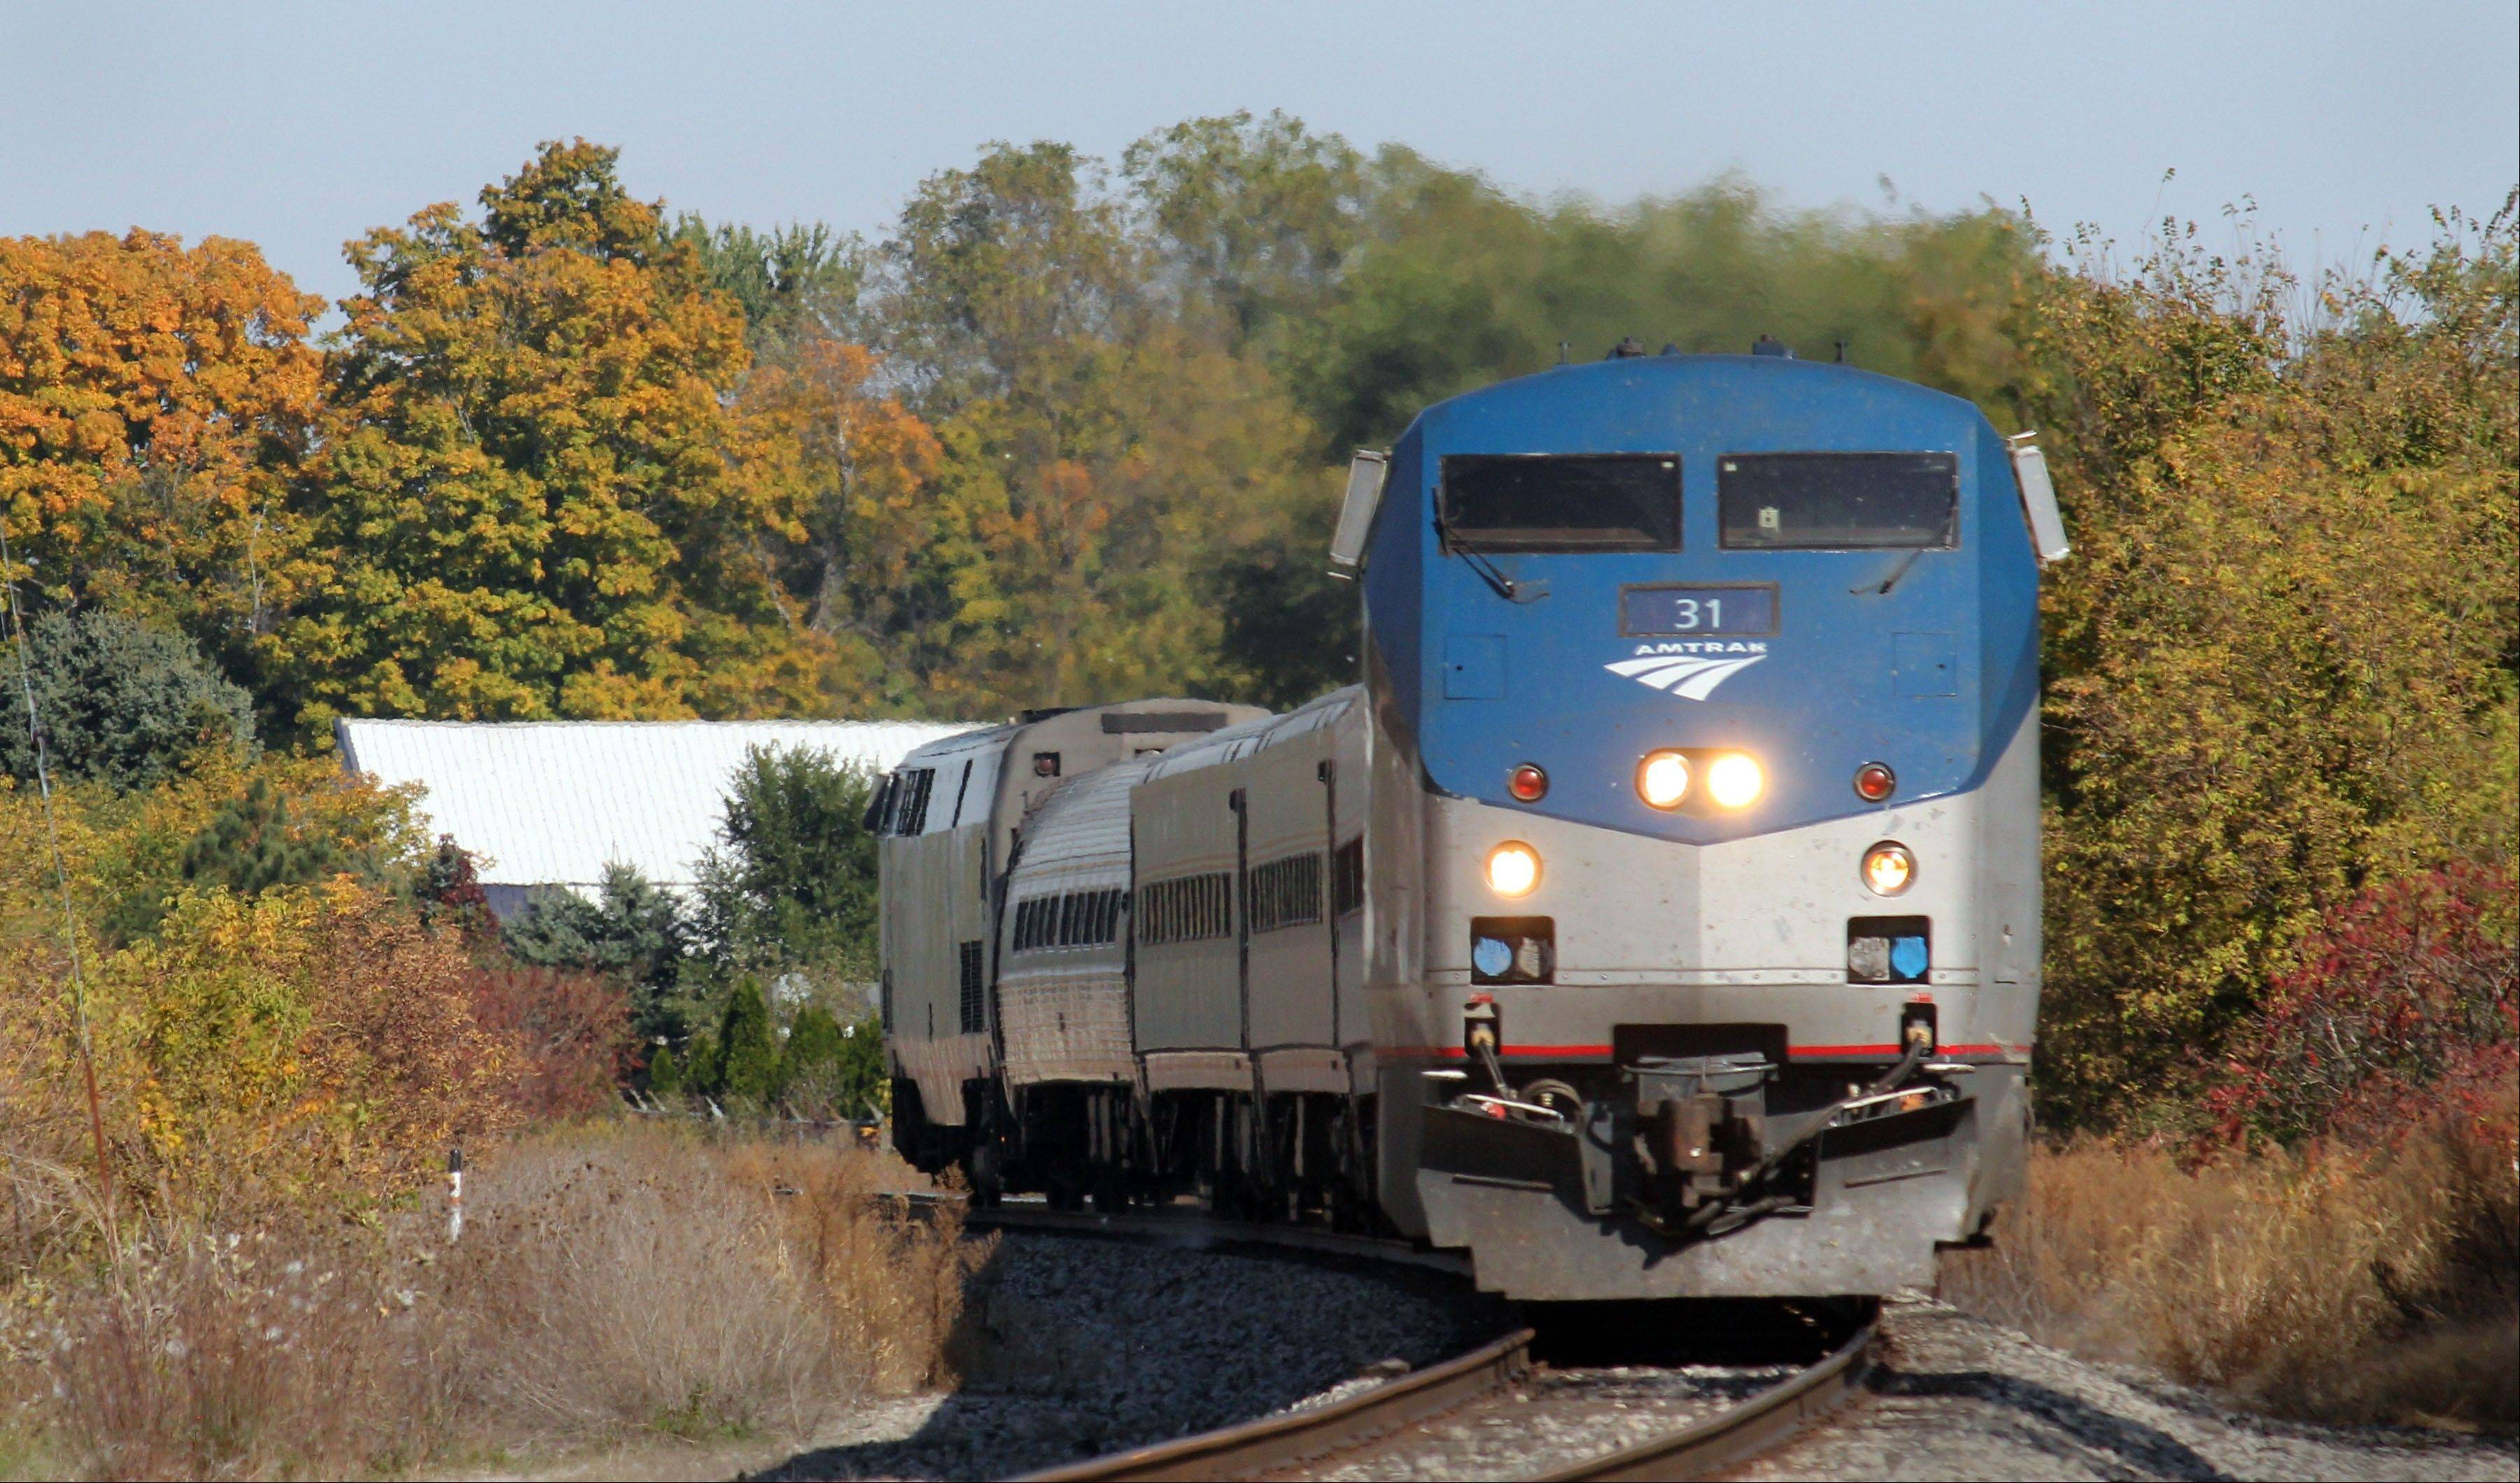 Indiana lawmakers said Wednesday they plan to re-examine a deal that will keep the Amtrak line between Indianapolis and Chicago running for at least another year.